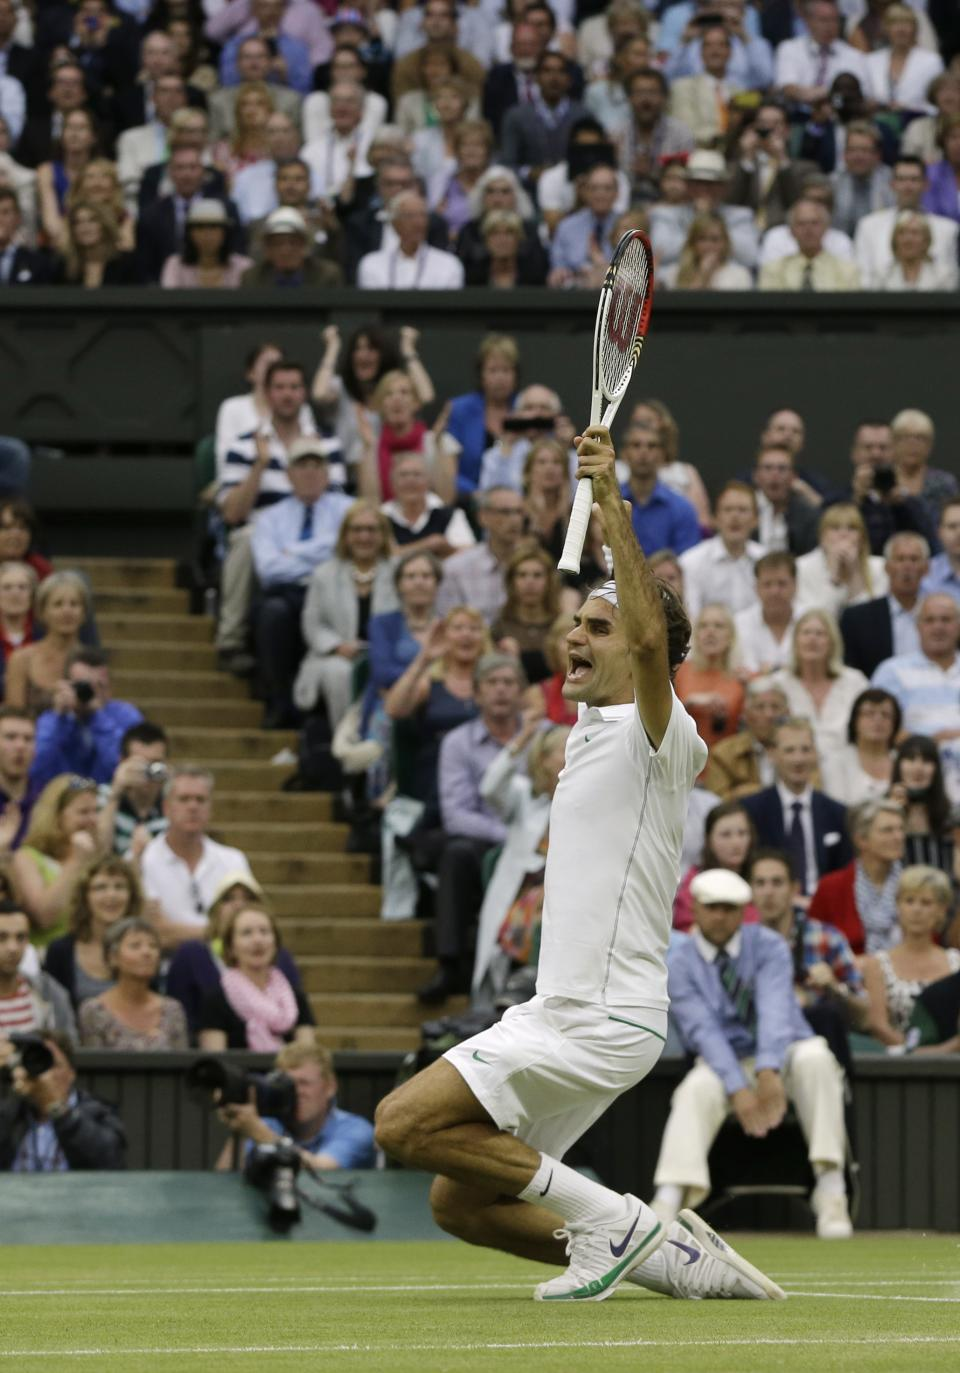 Roger Federer of Switzerland celebrates winning the men's singles final against Andy Murray of Britain at the All England Lawn Tennis Championships at Wimbledon, England, Sunday, July 8, 2012. (AP Photo/Kirsty Wigglesworth)